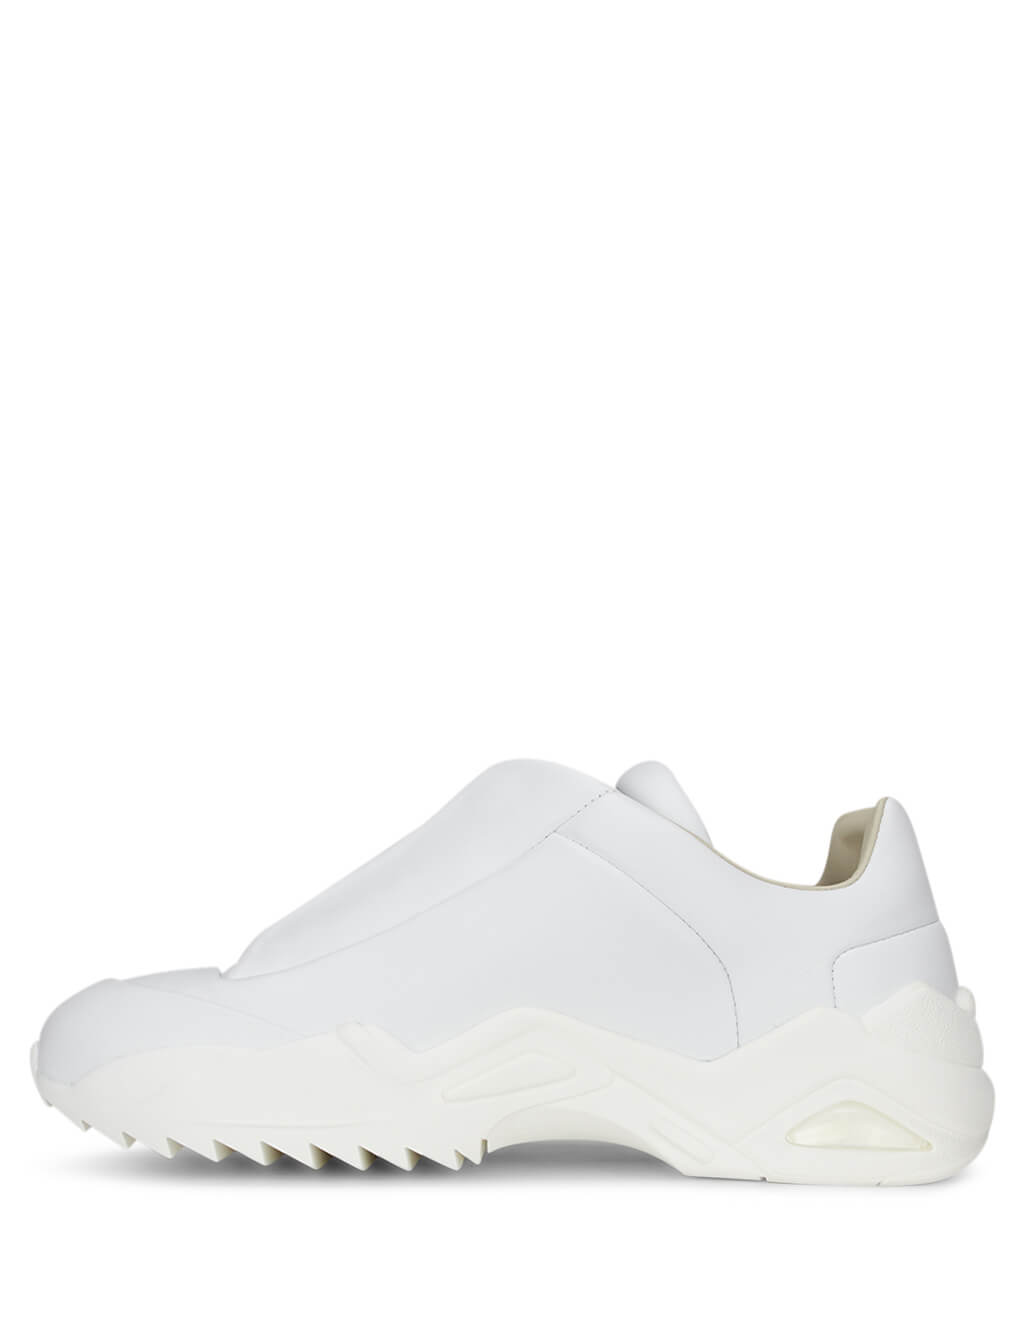 Maison Margiela Men's White Future Sneakers S37WS0493P2589H7341